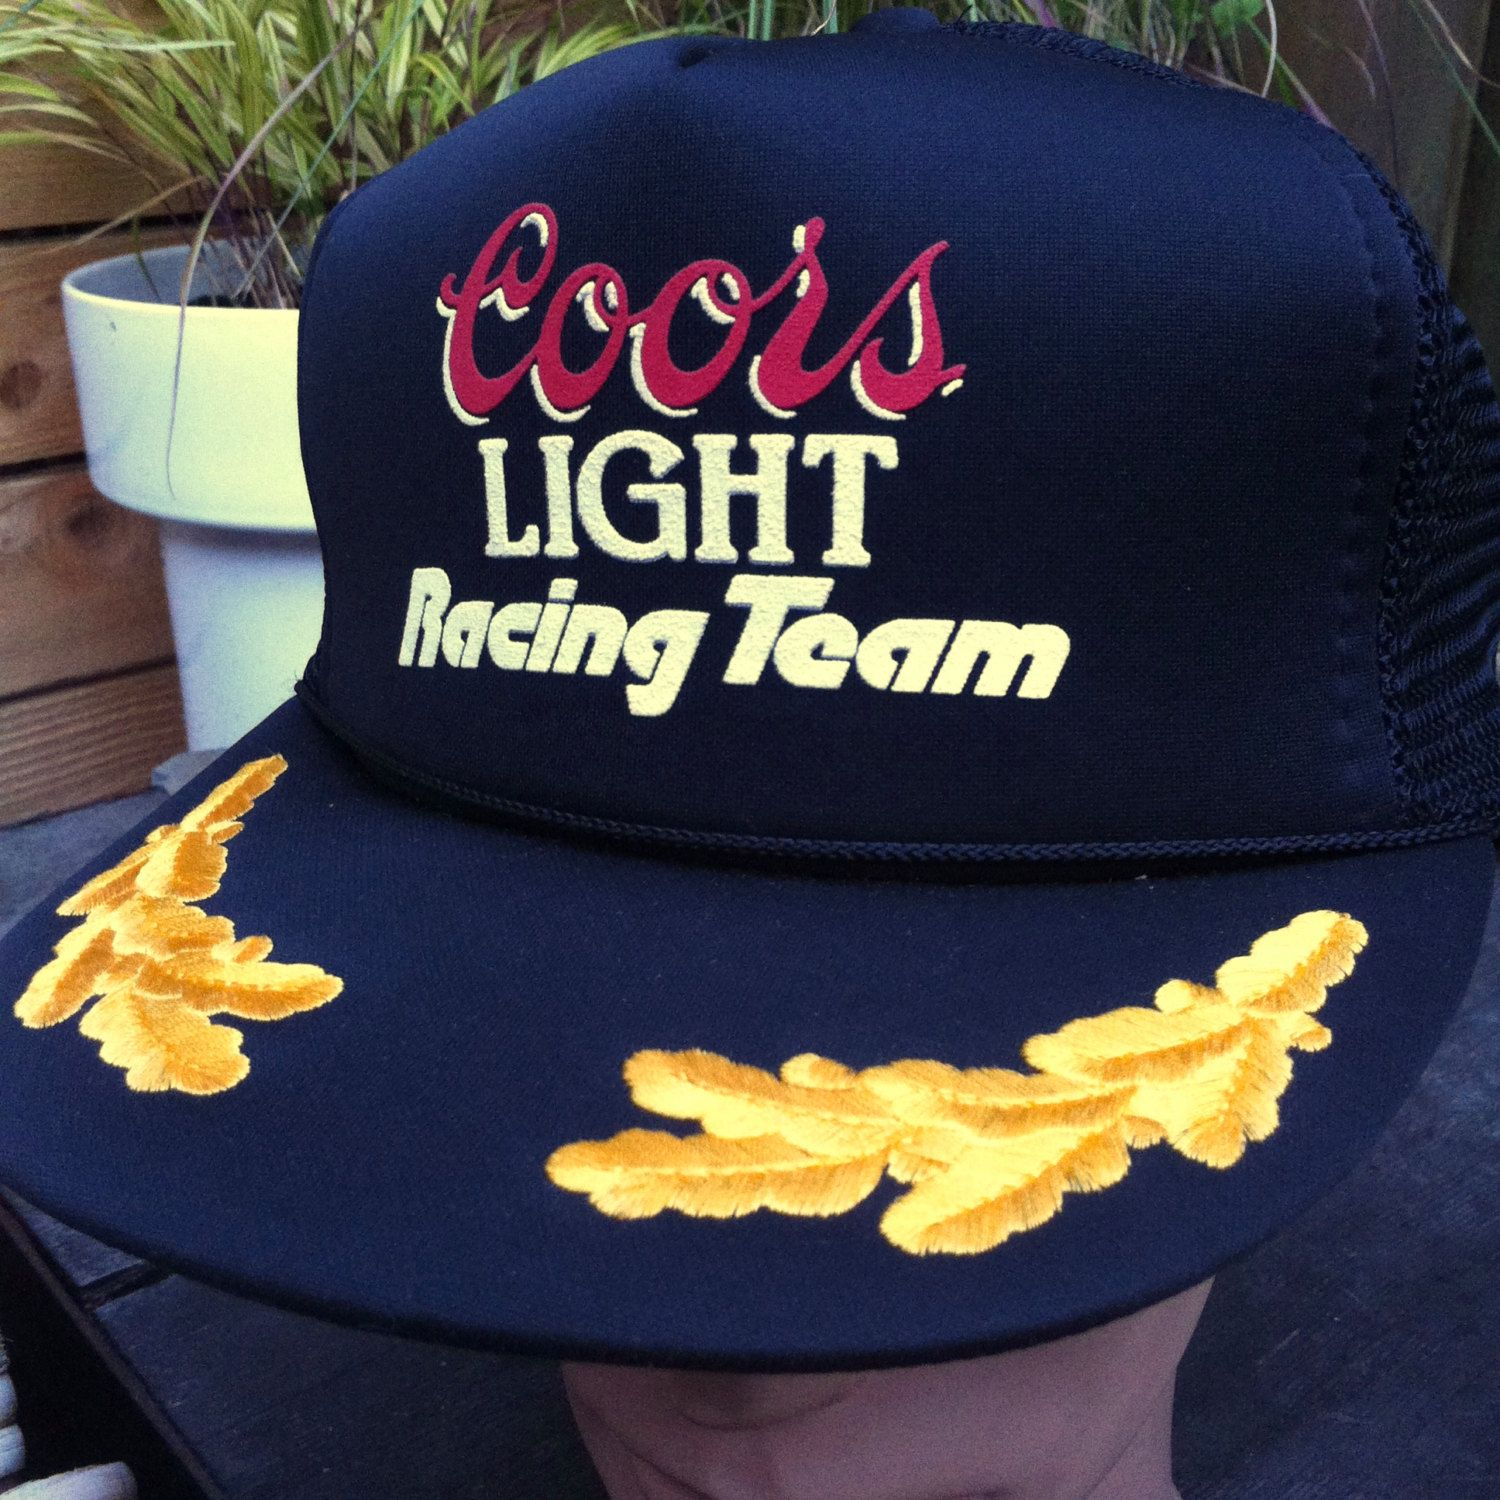 bc2400117e3 Vintage Coors Light Beer Racing Team Mesh Back Snapback Trucker Hat Black  with Gold Embroidery Designer Pro by vintagebaron on Etsy